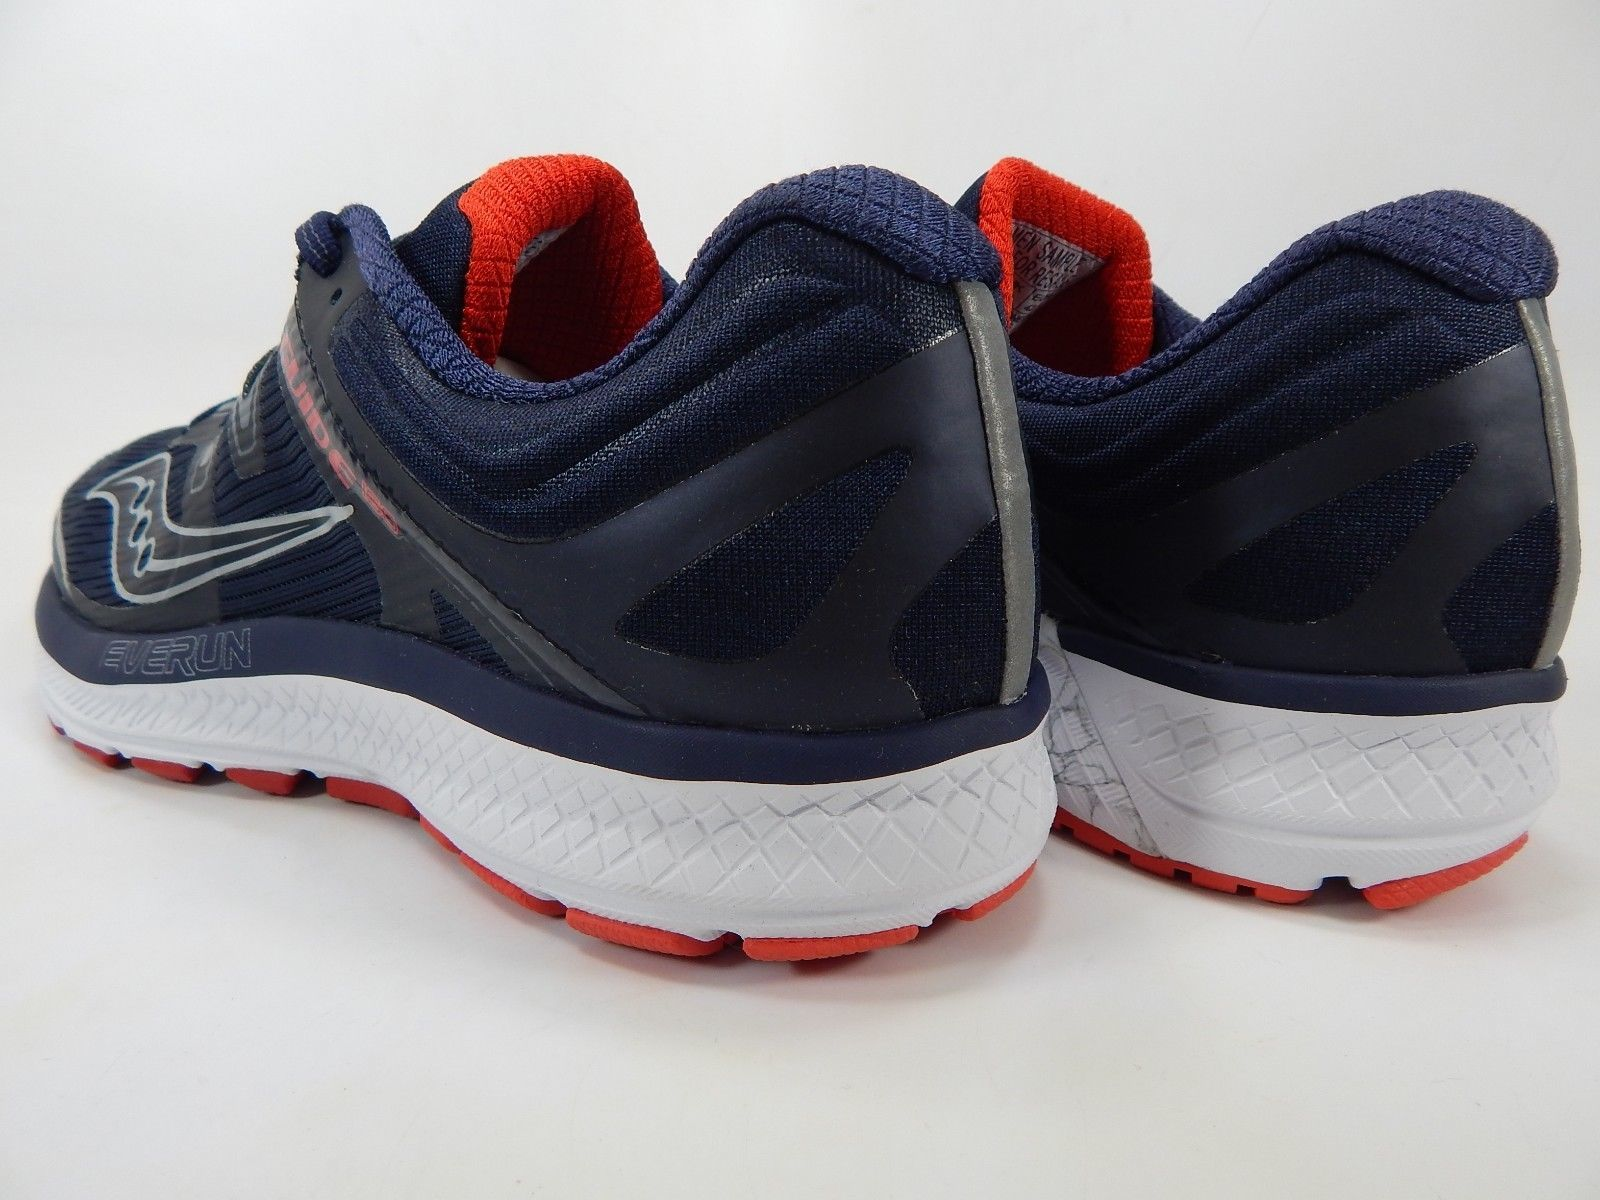 Saucony Guide ISO Size US 9 M (D) EU 42.5 Men's  Running Shoes Red Navy S20415-3